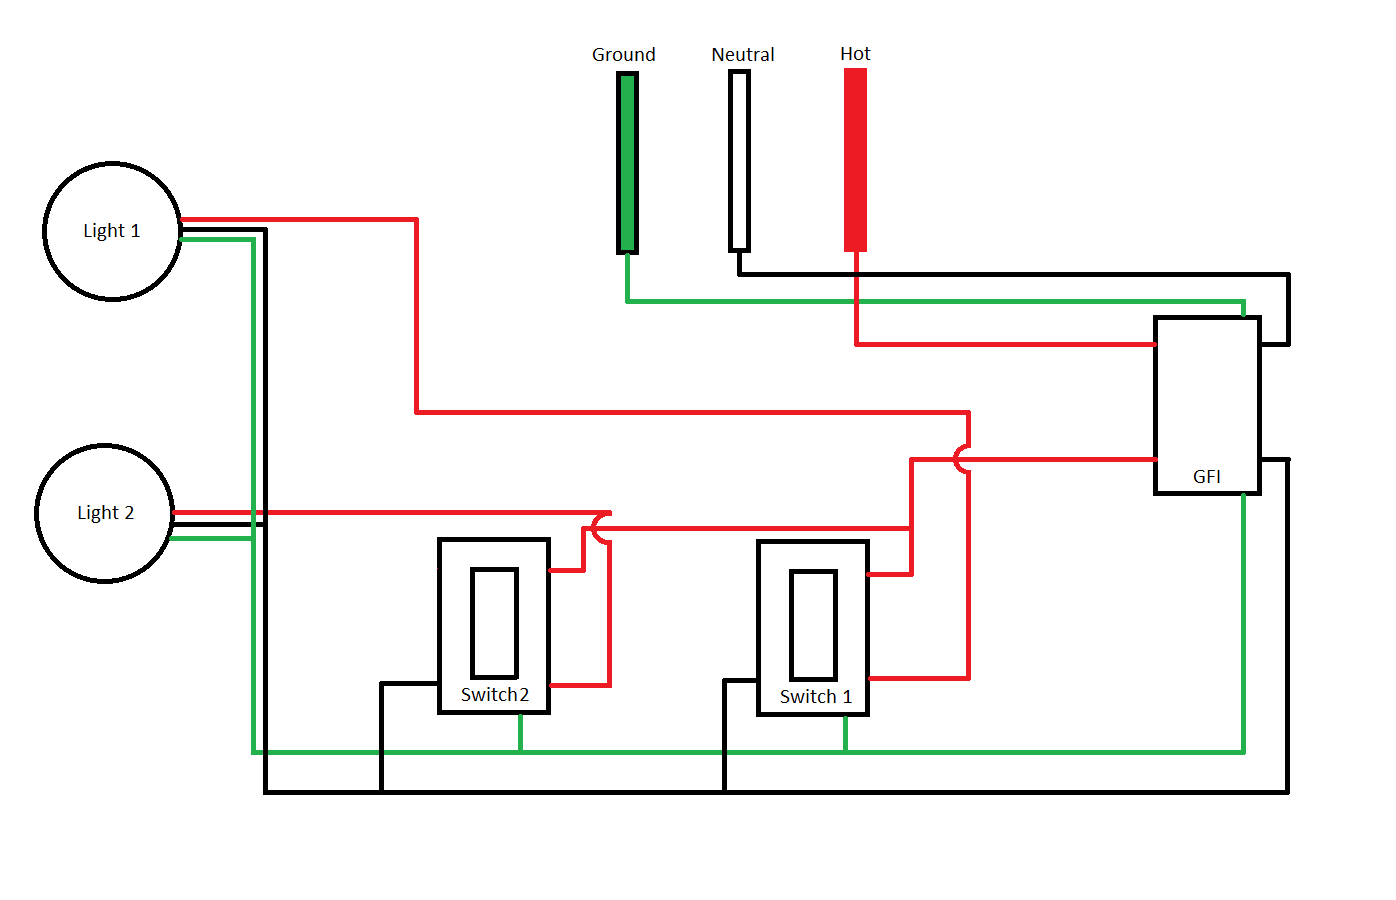 hight resolution of  diagram 4 replacing pool light switches with smart switches is this correct on 2 pole